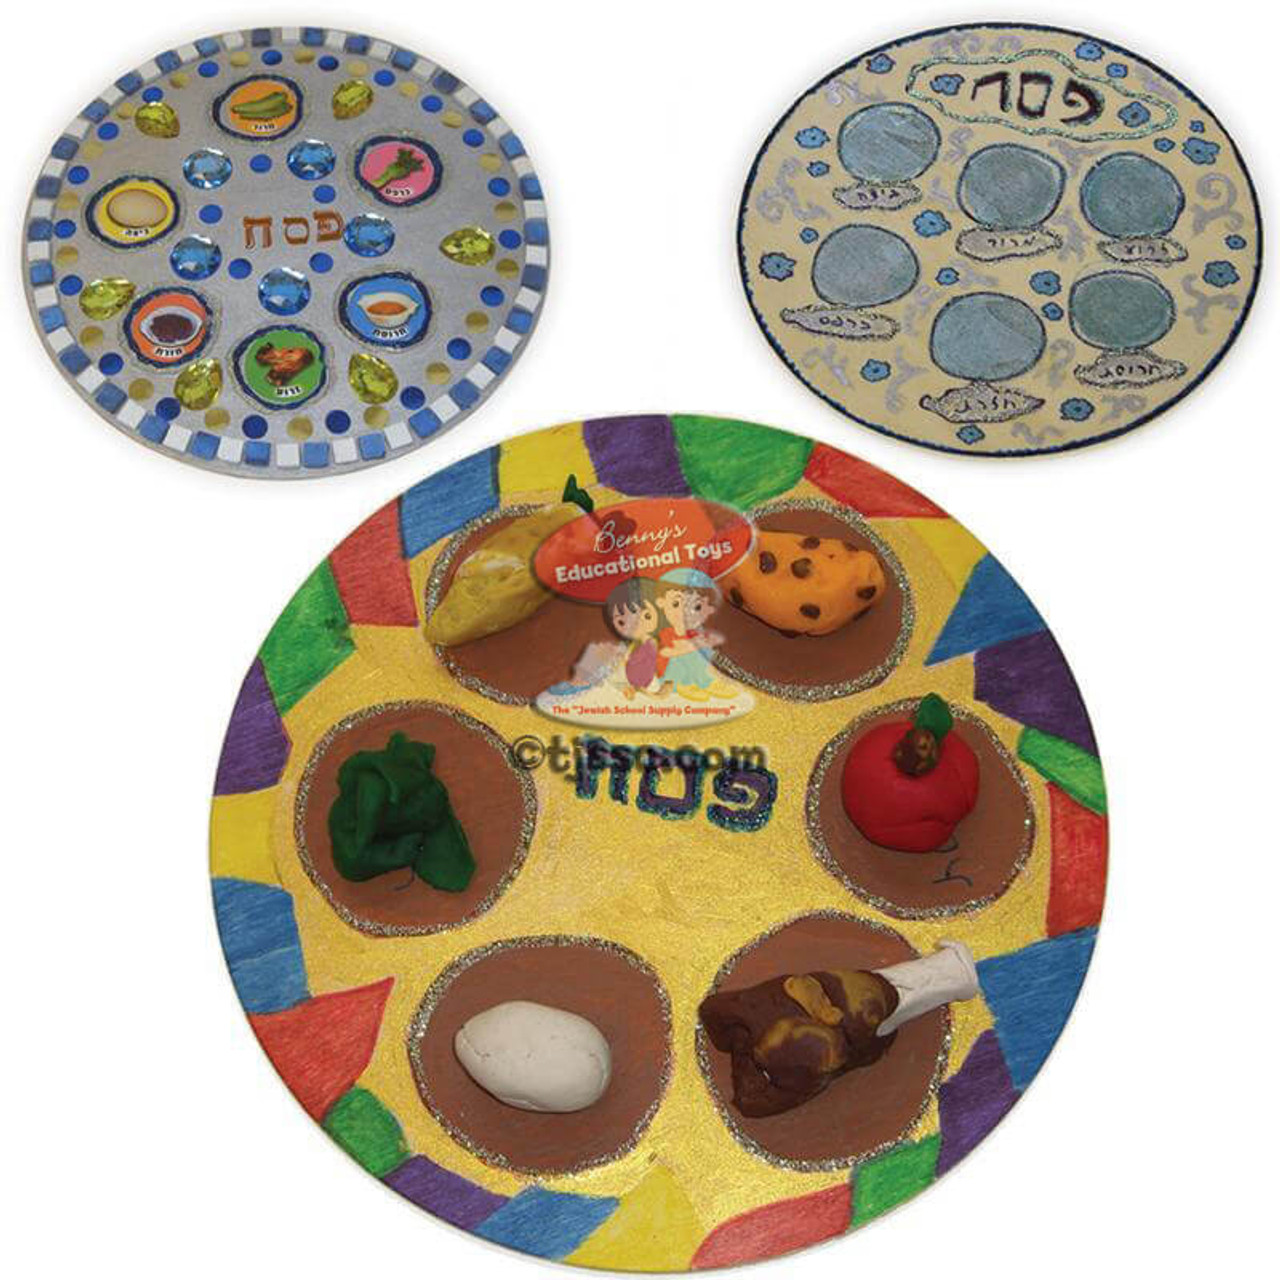 Art Decorating And Crafting Large Wooden Circle For Seder Plate Crafting 10